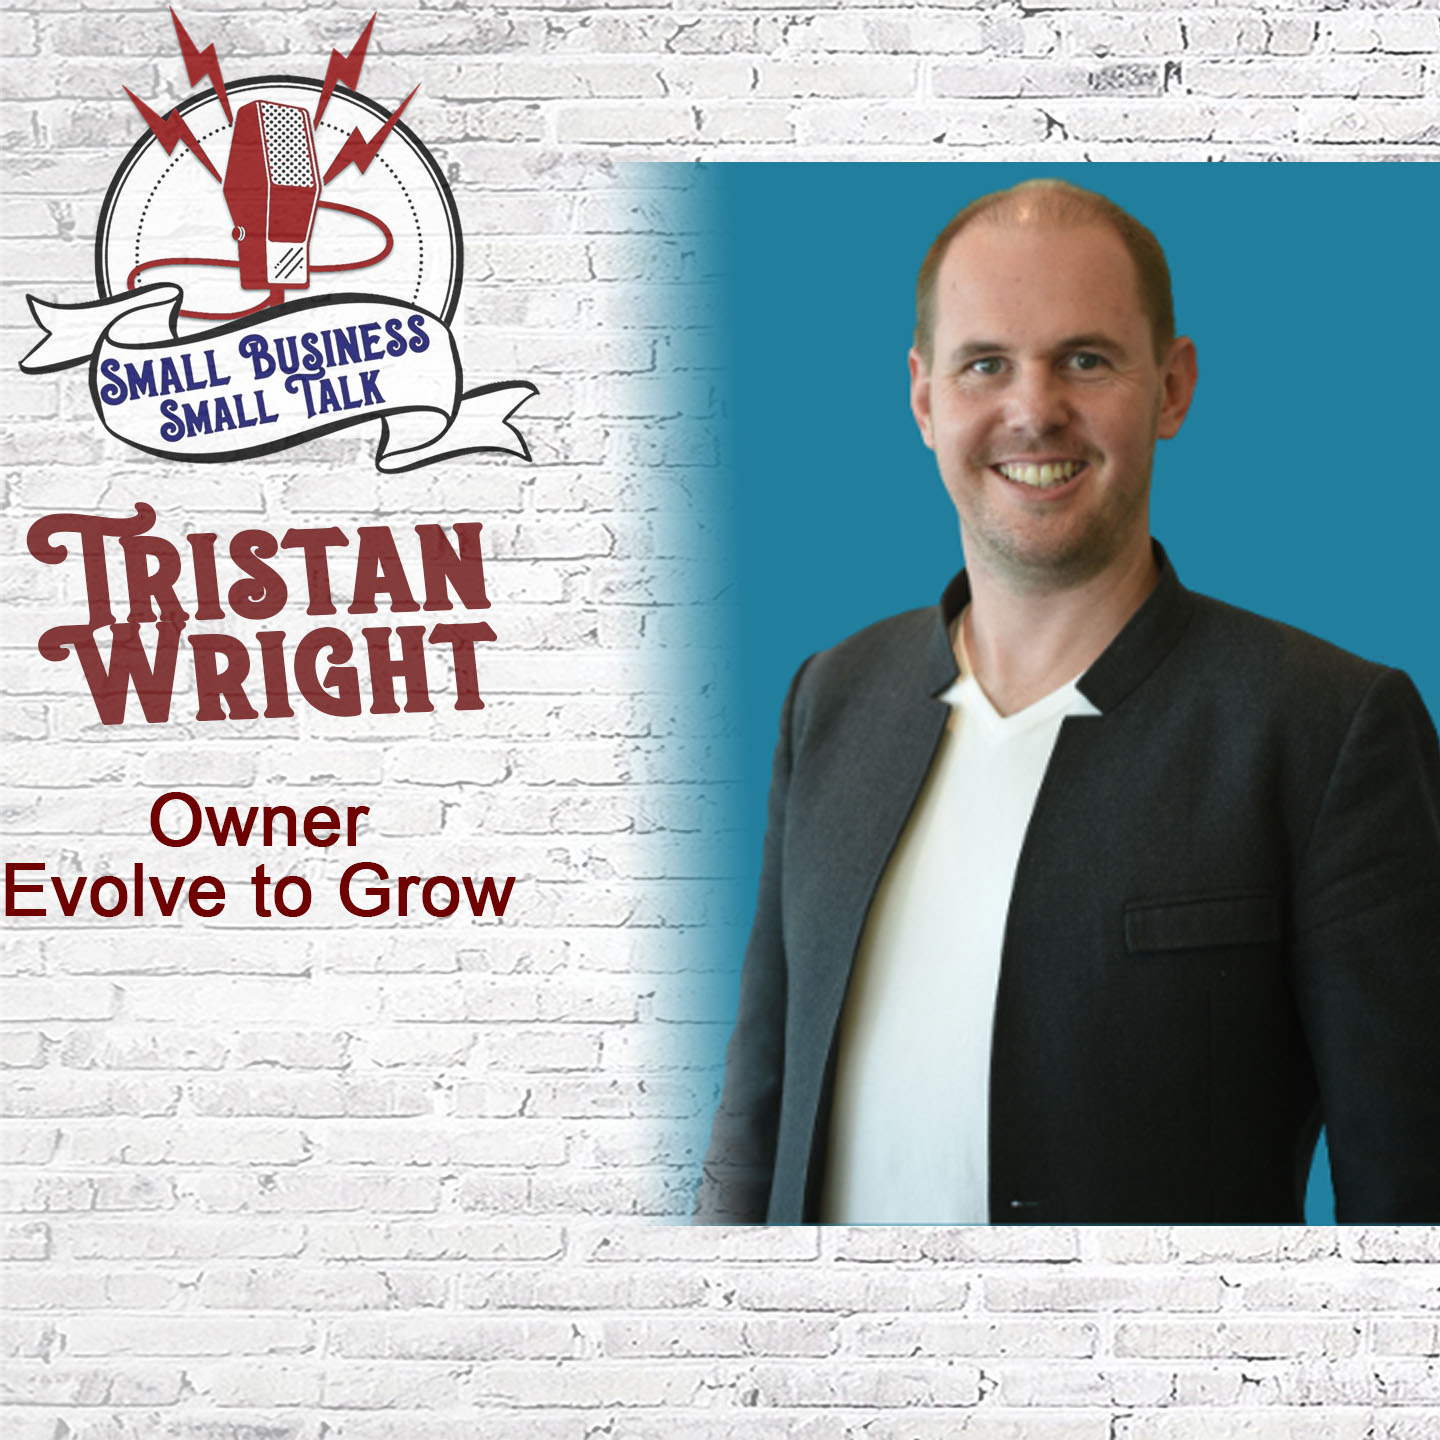 Evolving and growing as a business owner with Tristan Wright, owner of Evolve to Grow